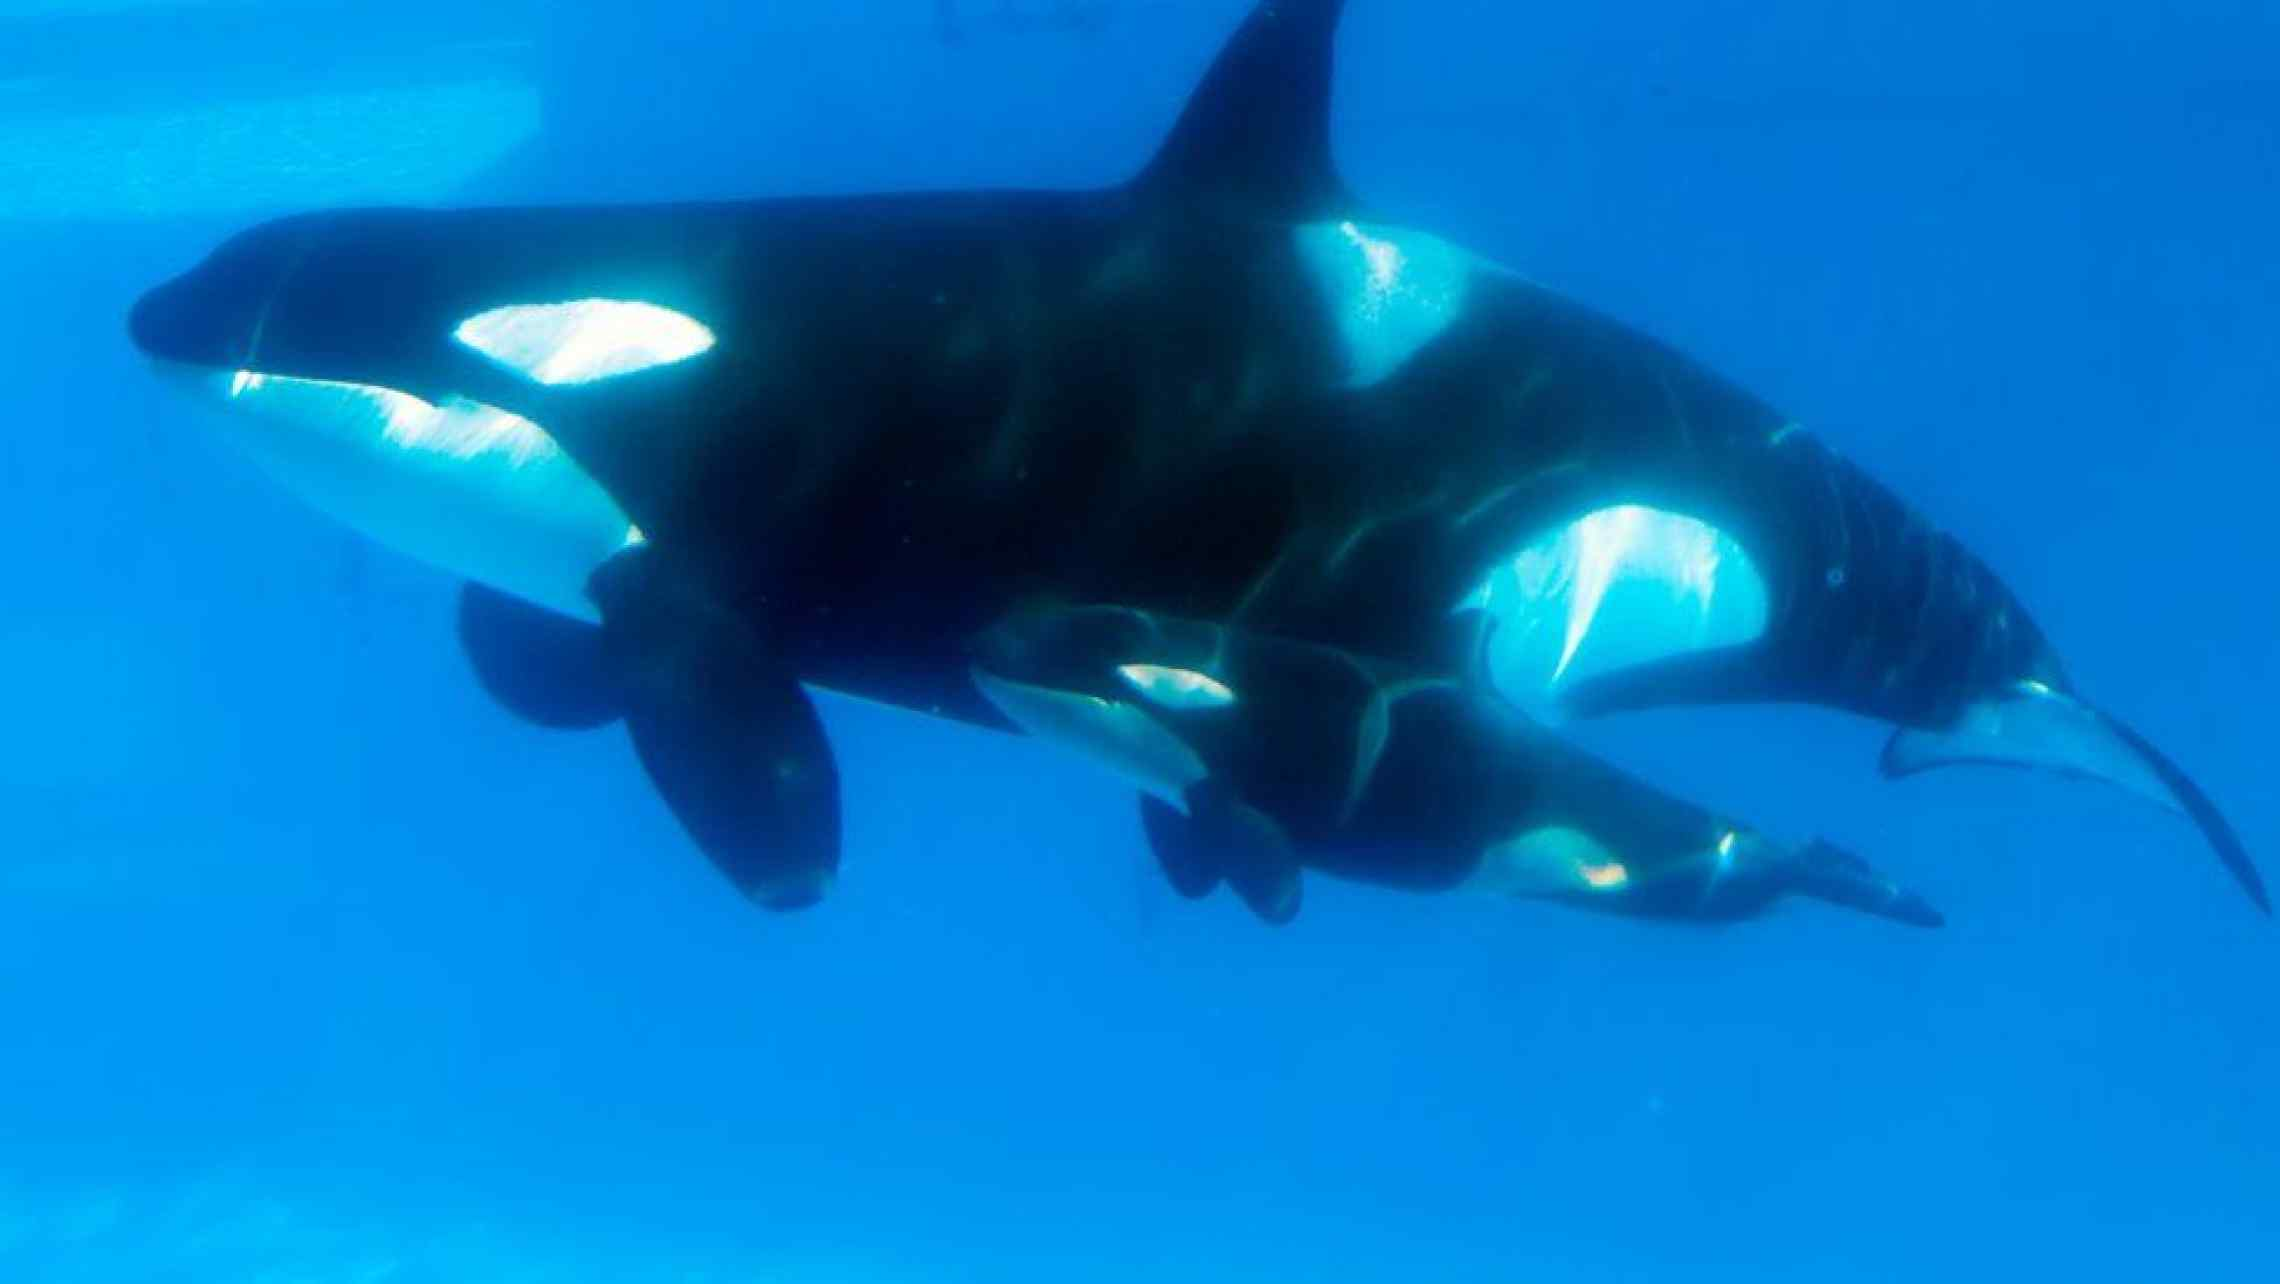 separation anxiety and issues of the mother orca kasatka in seaworld Blackfish response to seaworld seaworld a male killer whale and that takara was 12 when they took her away from her mother kasatka seaworld further.